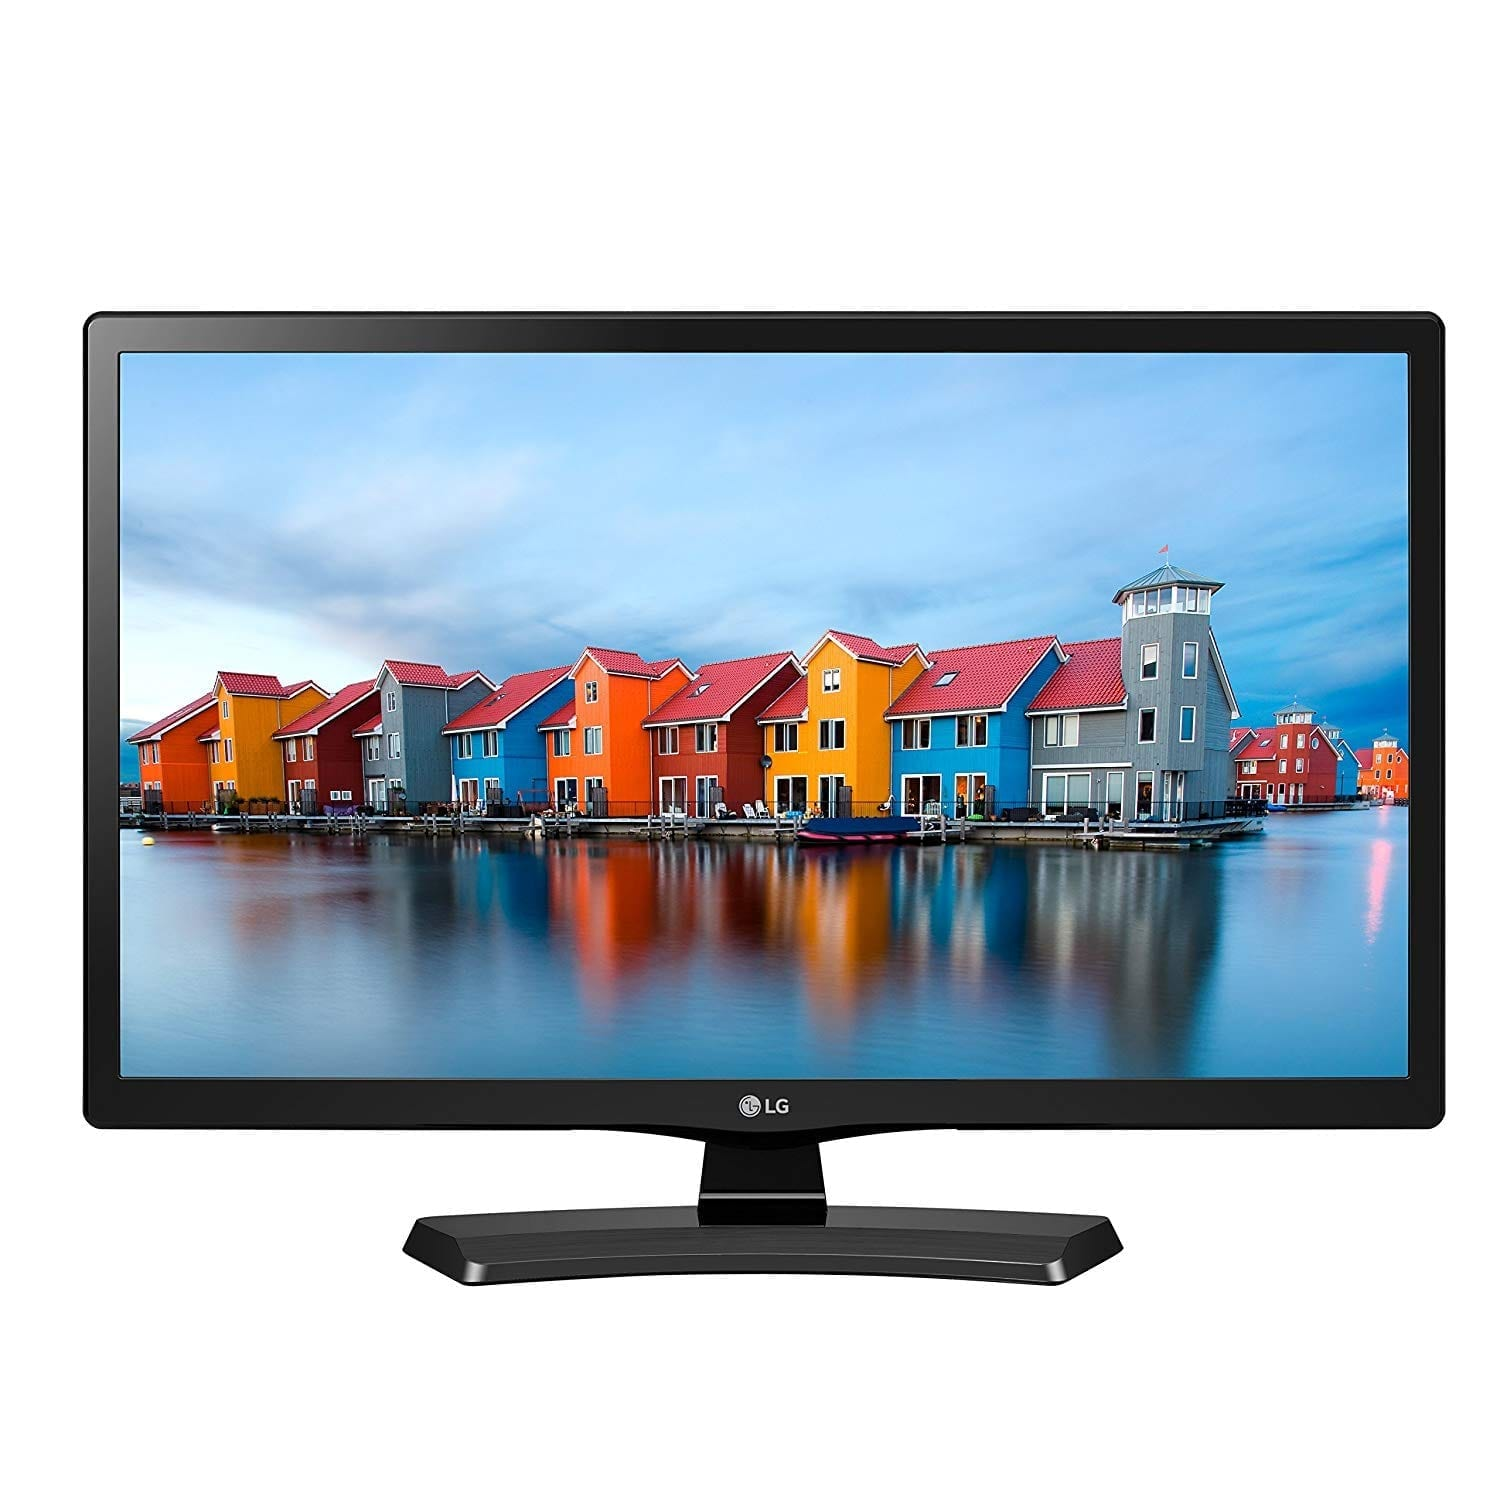 LG 24LH4830-PU 24-Inch LED TV (2016 Model)